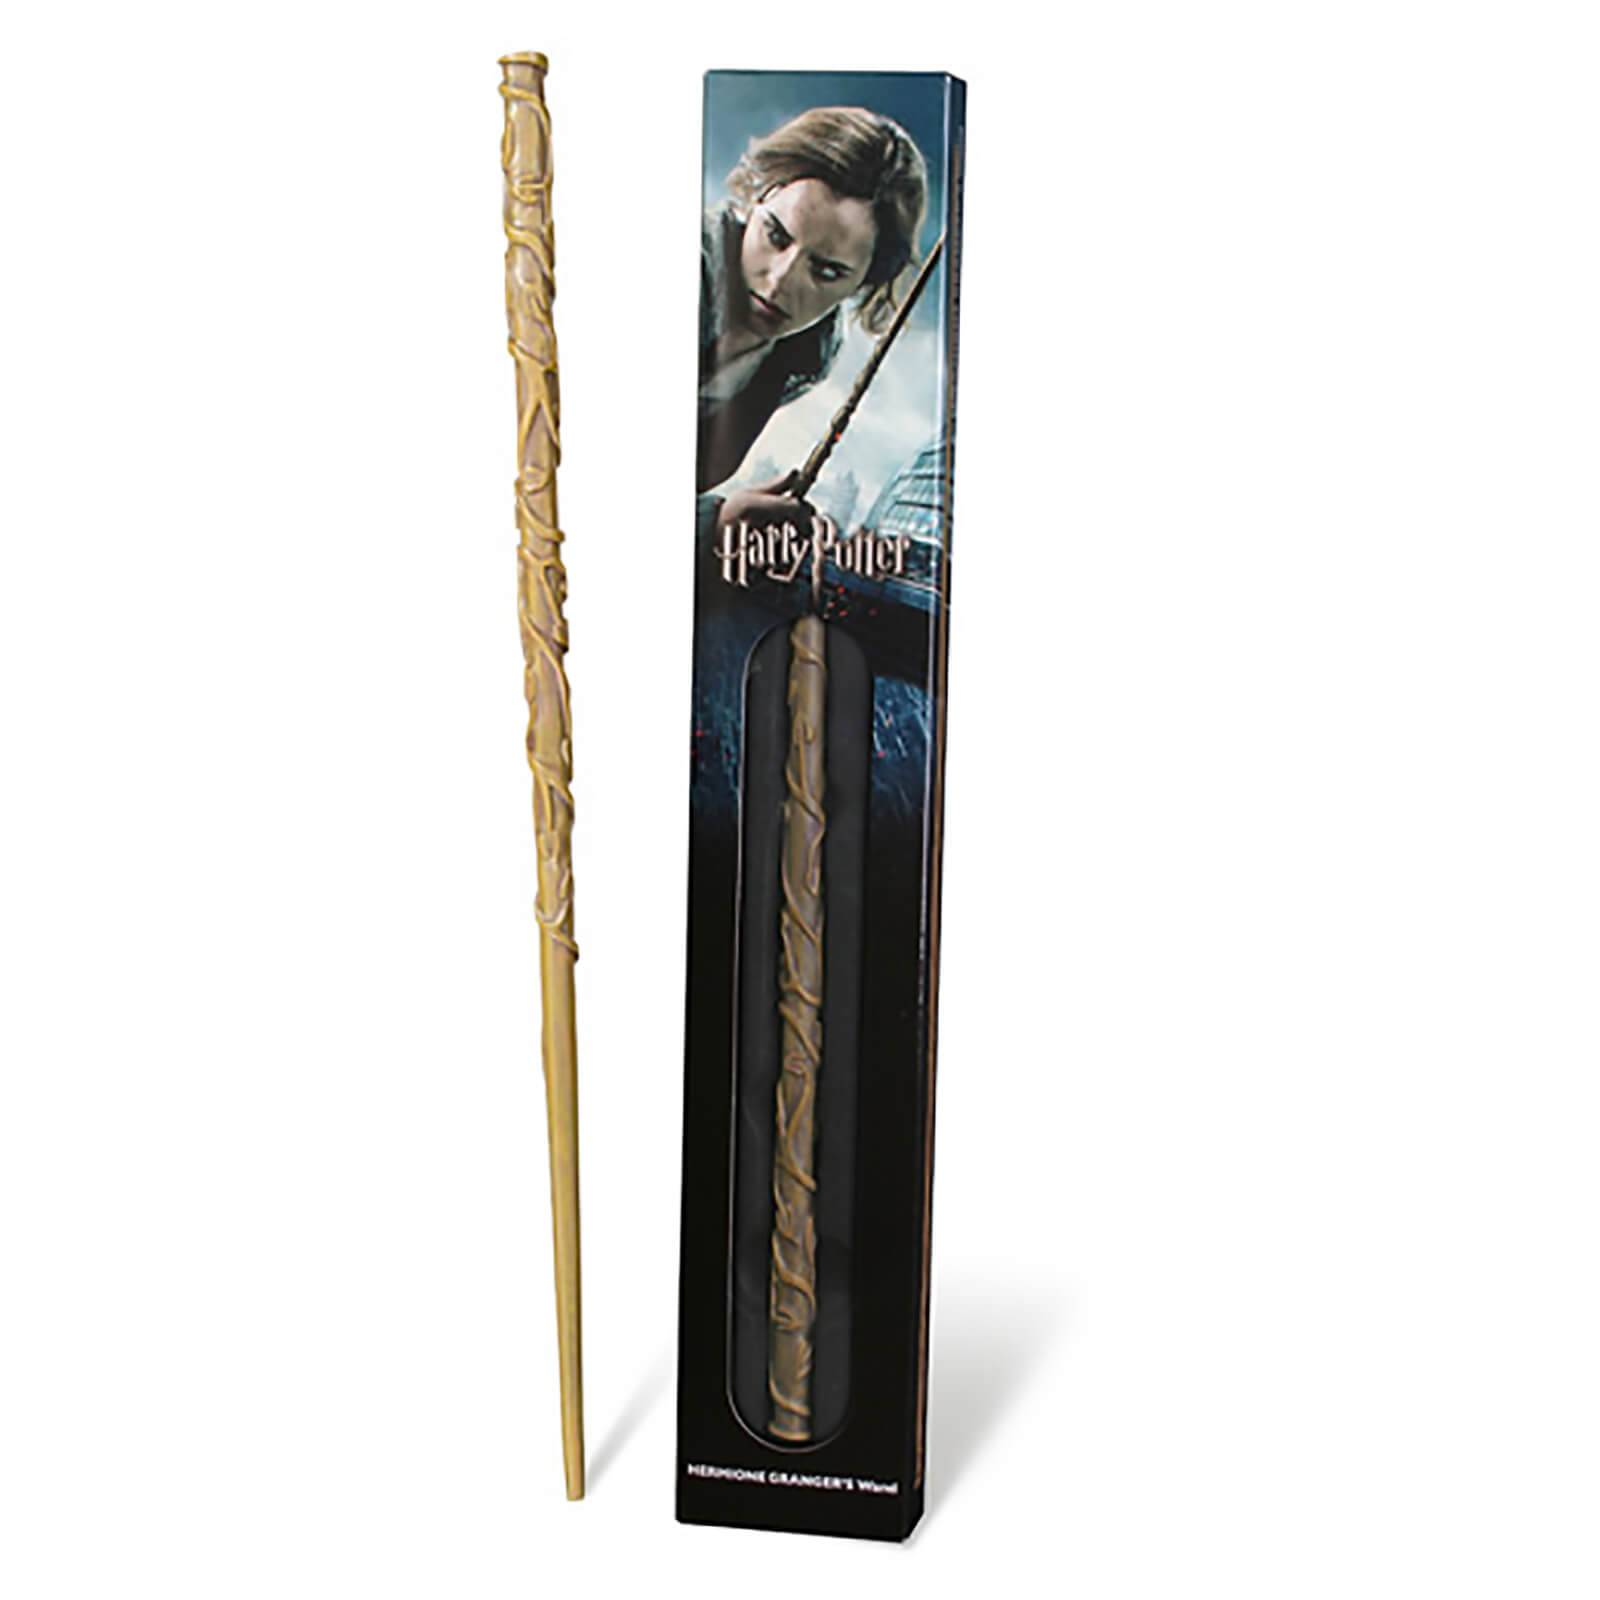 Noble Collection Harry Potter Hermione Granger's Wand with Window Box